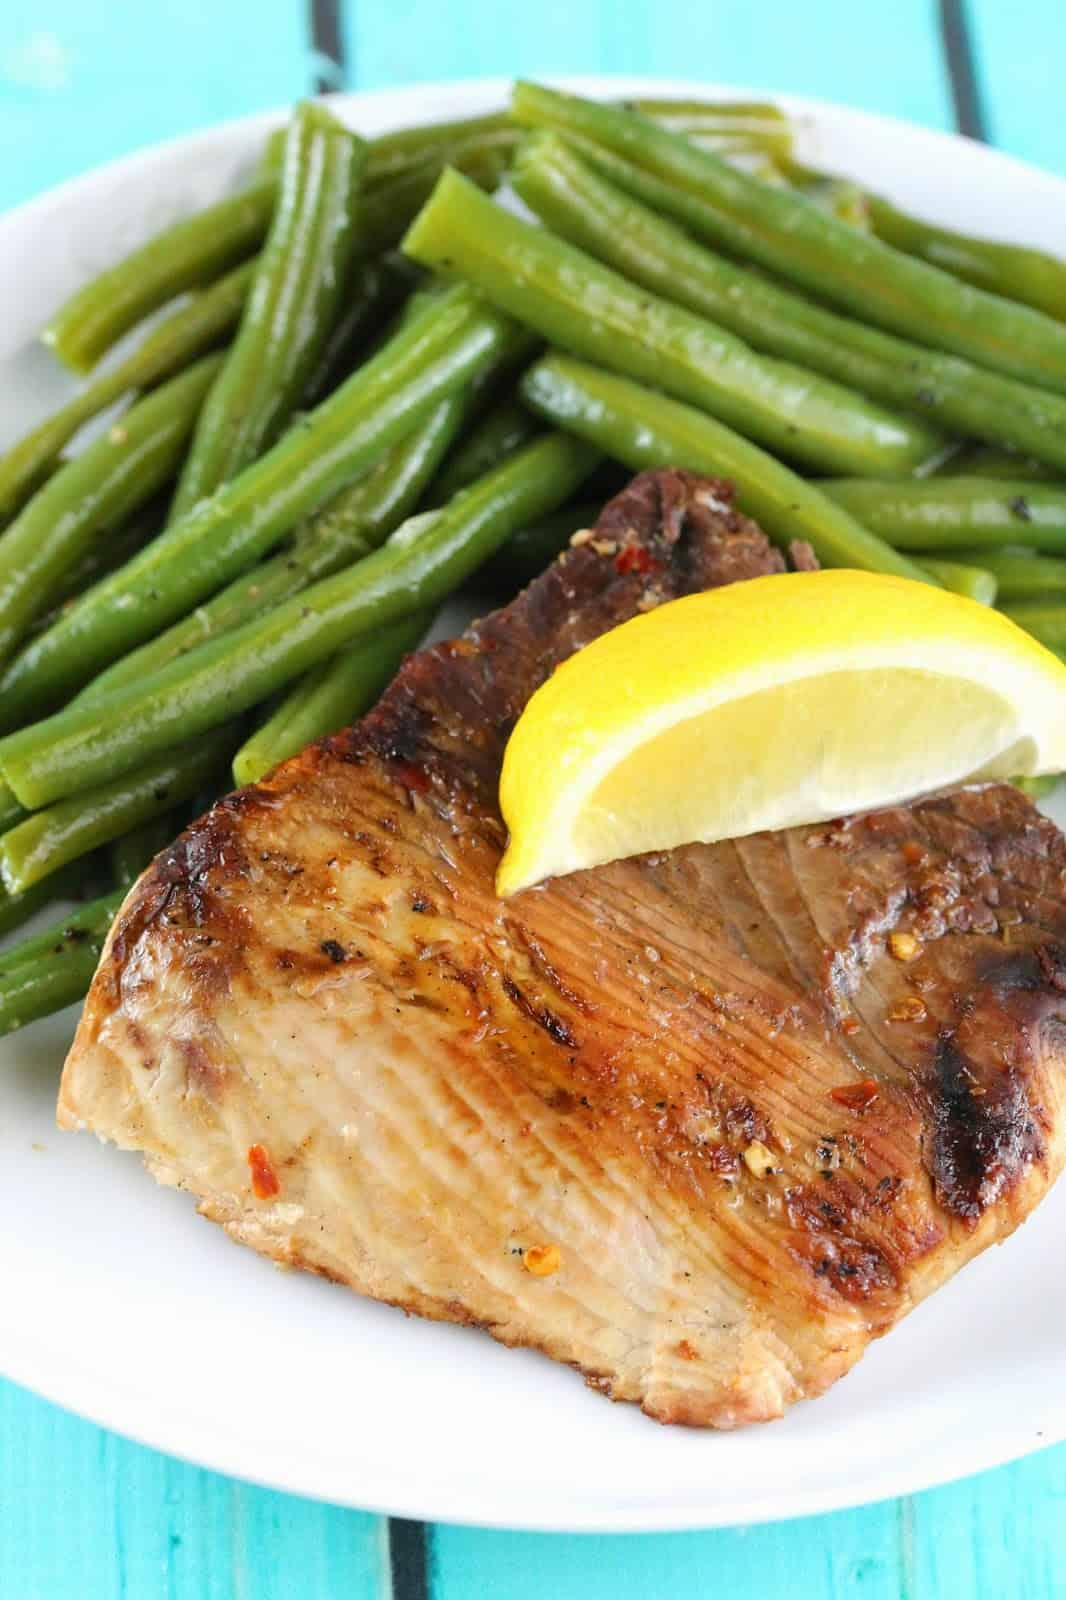 Thresher Shark served with green beans and topped with a fresh lemon wedge: A nice, steaky, meaty fish that makes you feel like you have conquered the ocean.